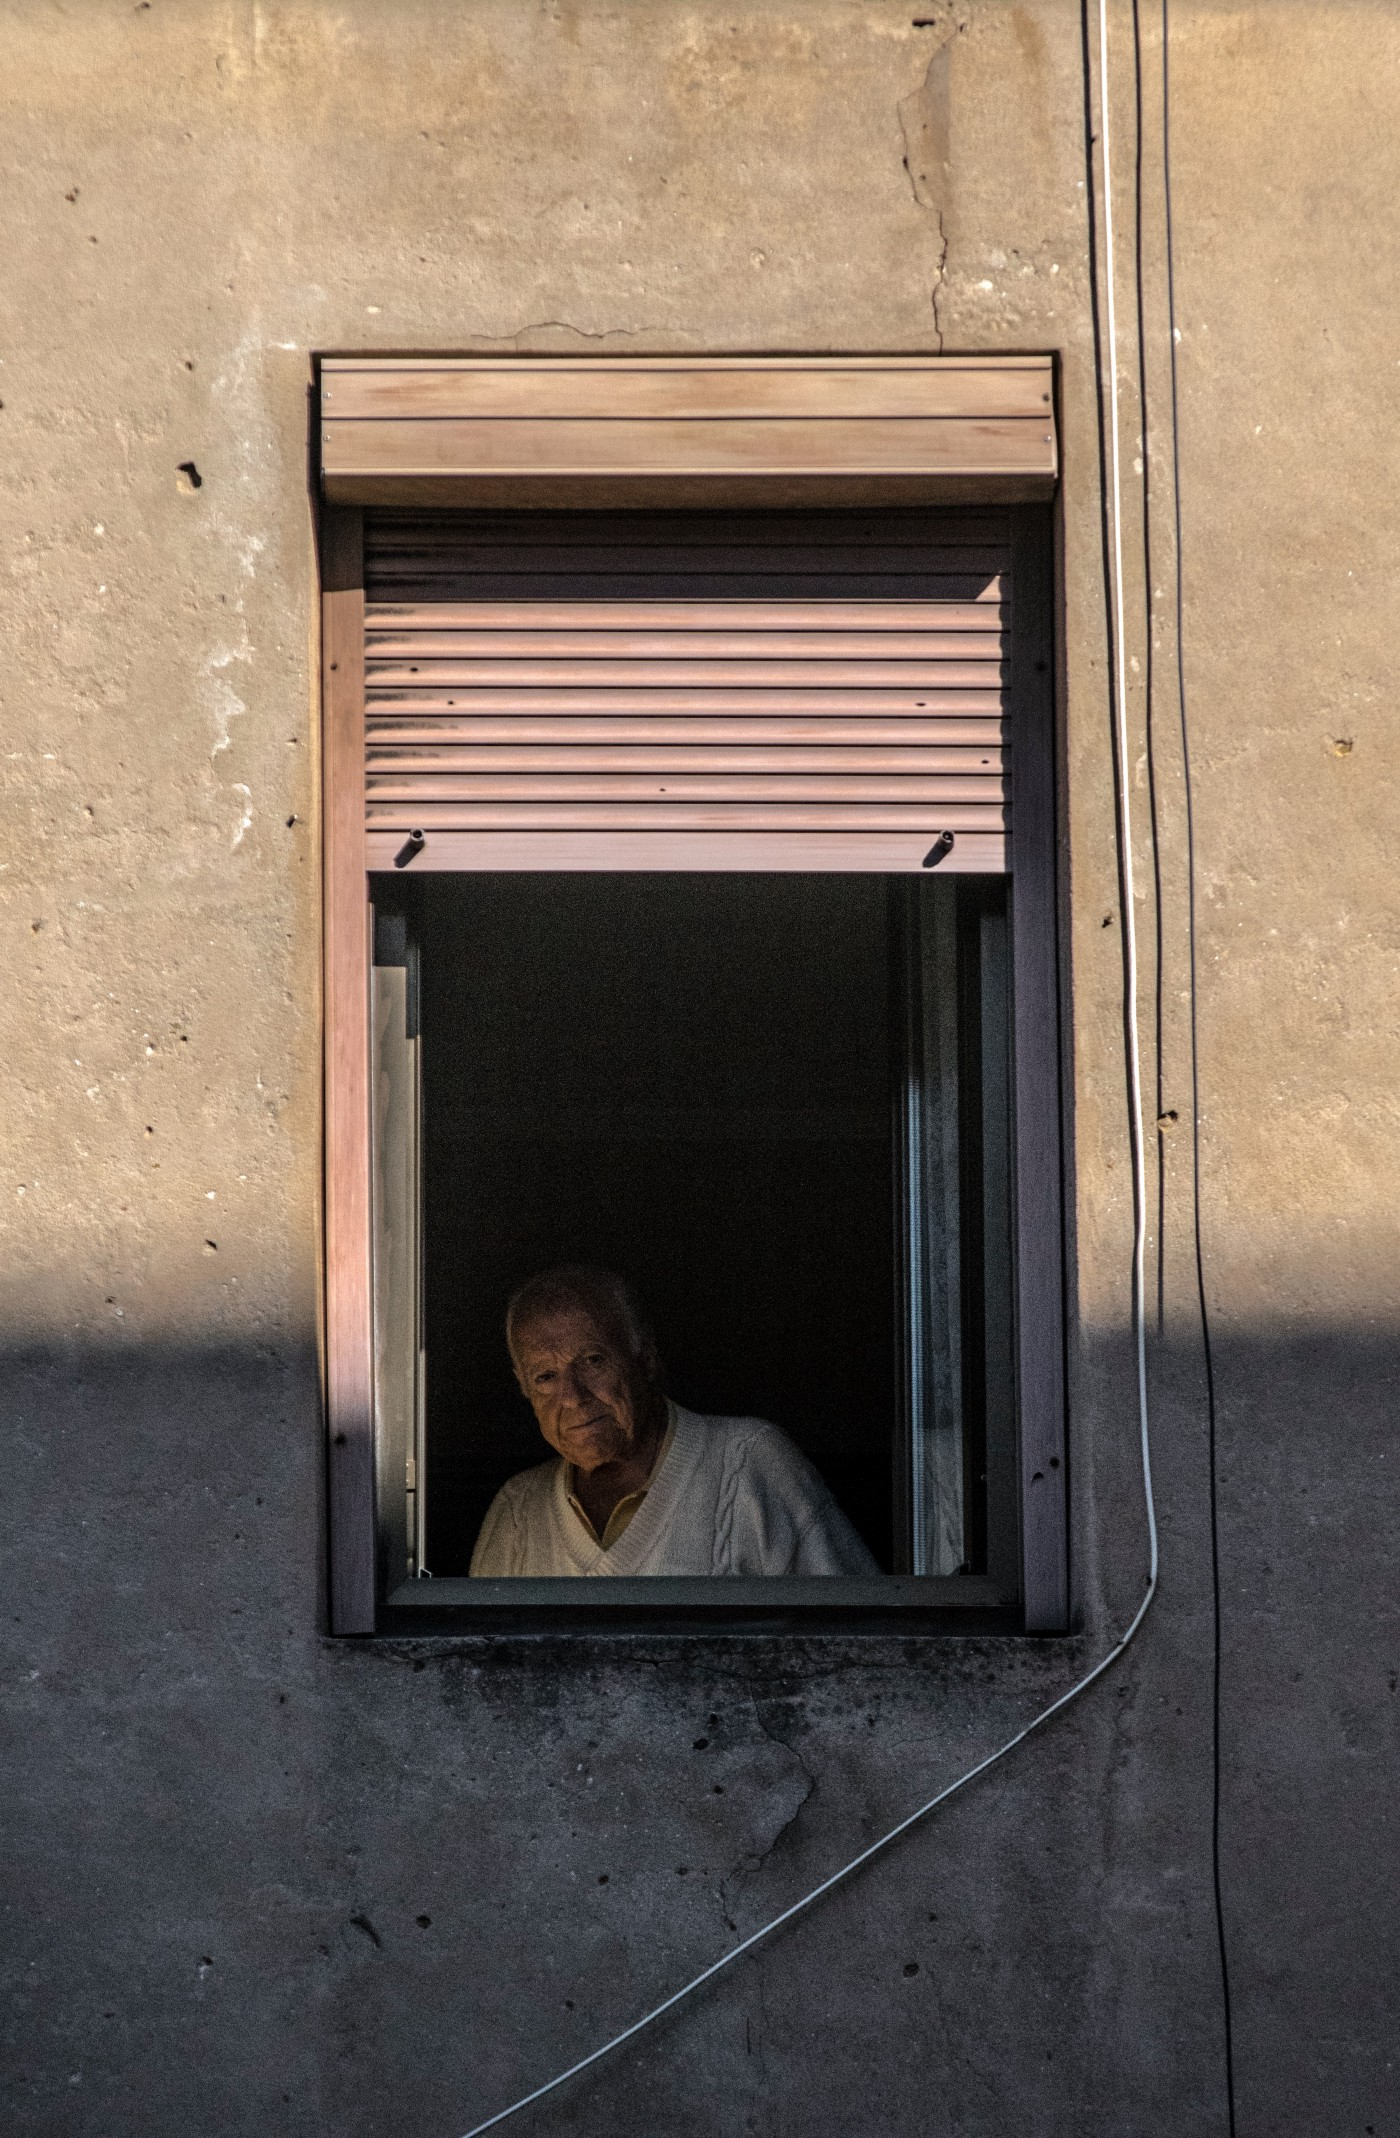 old man sitting in darkness, wearing a white shirt, looking out of his window.